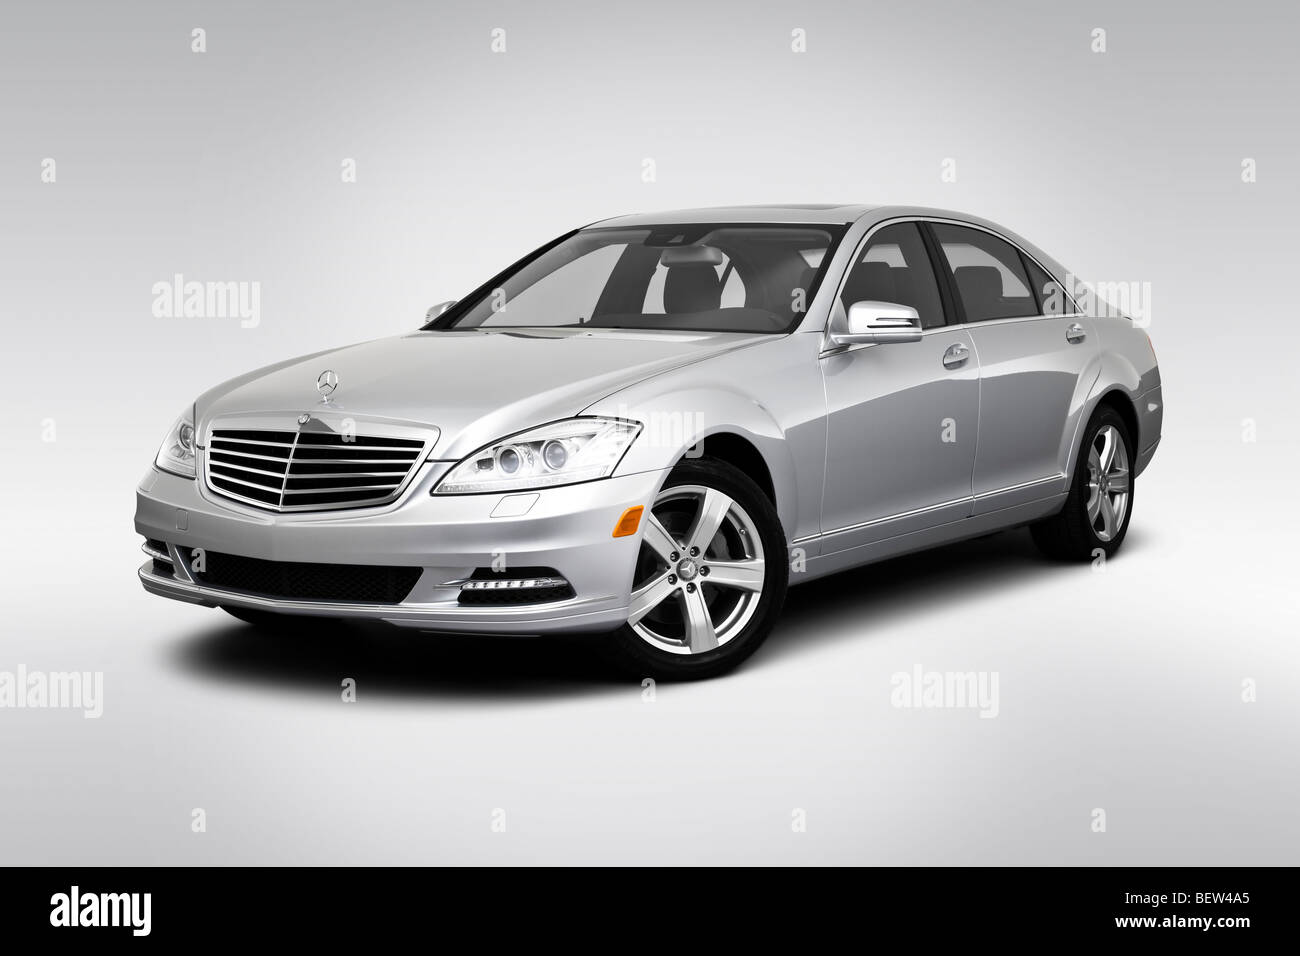 2010 mercedes benz s class s550 in silver front angle. Black Bedroom Furniture Sets. Home Design Ideas